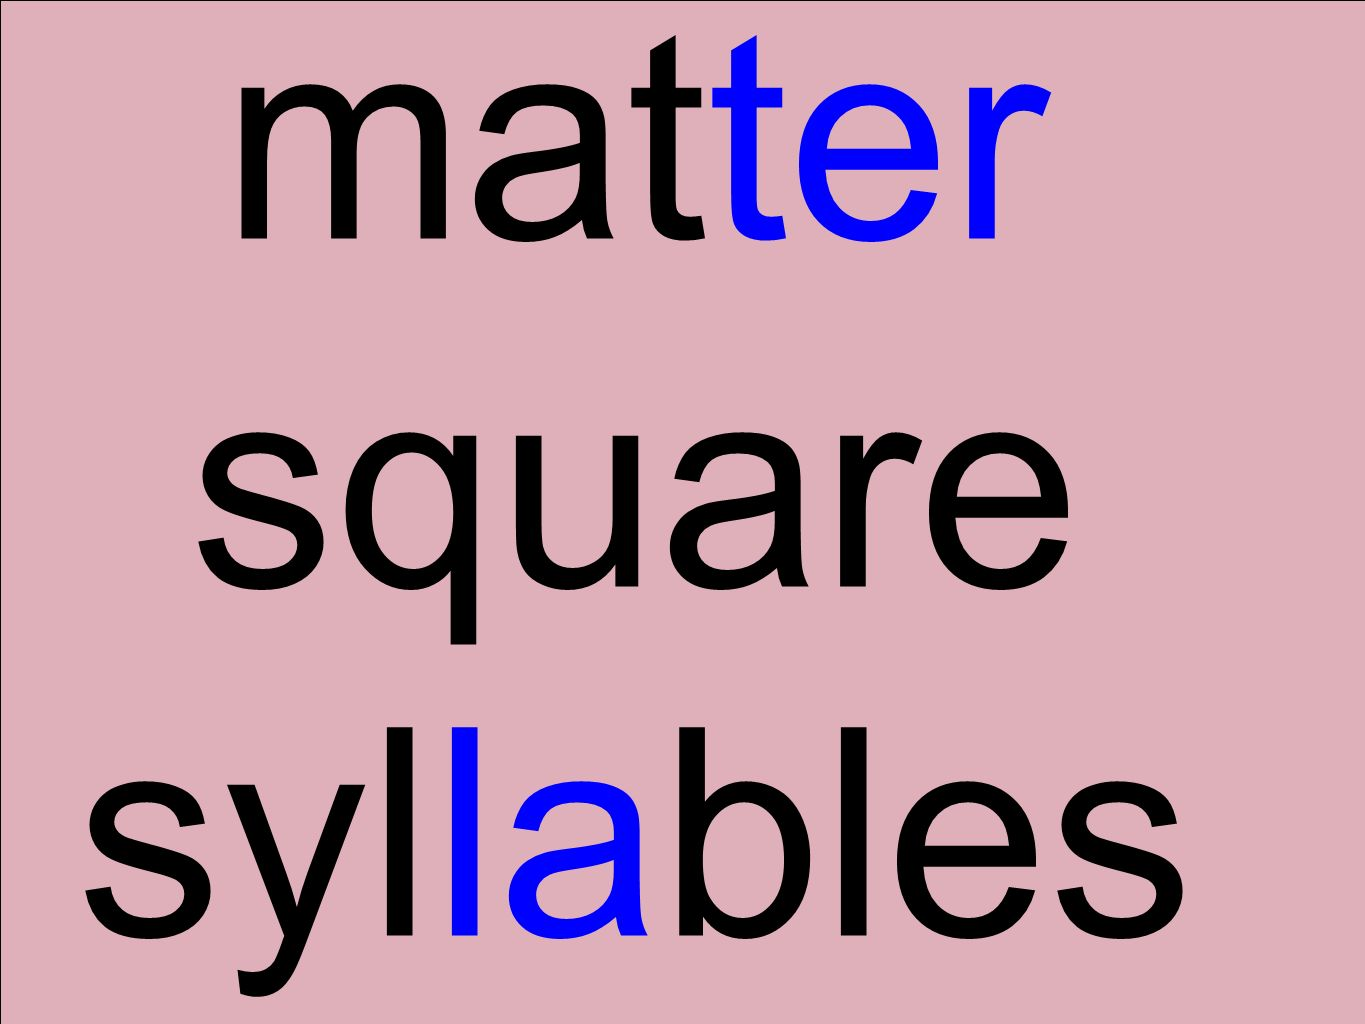 matter square syllables